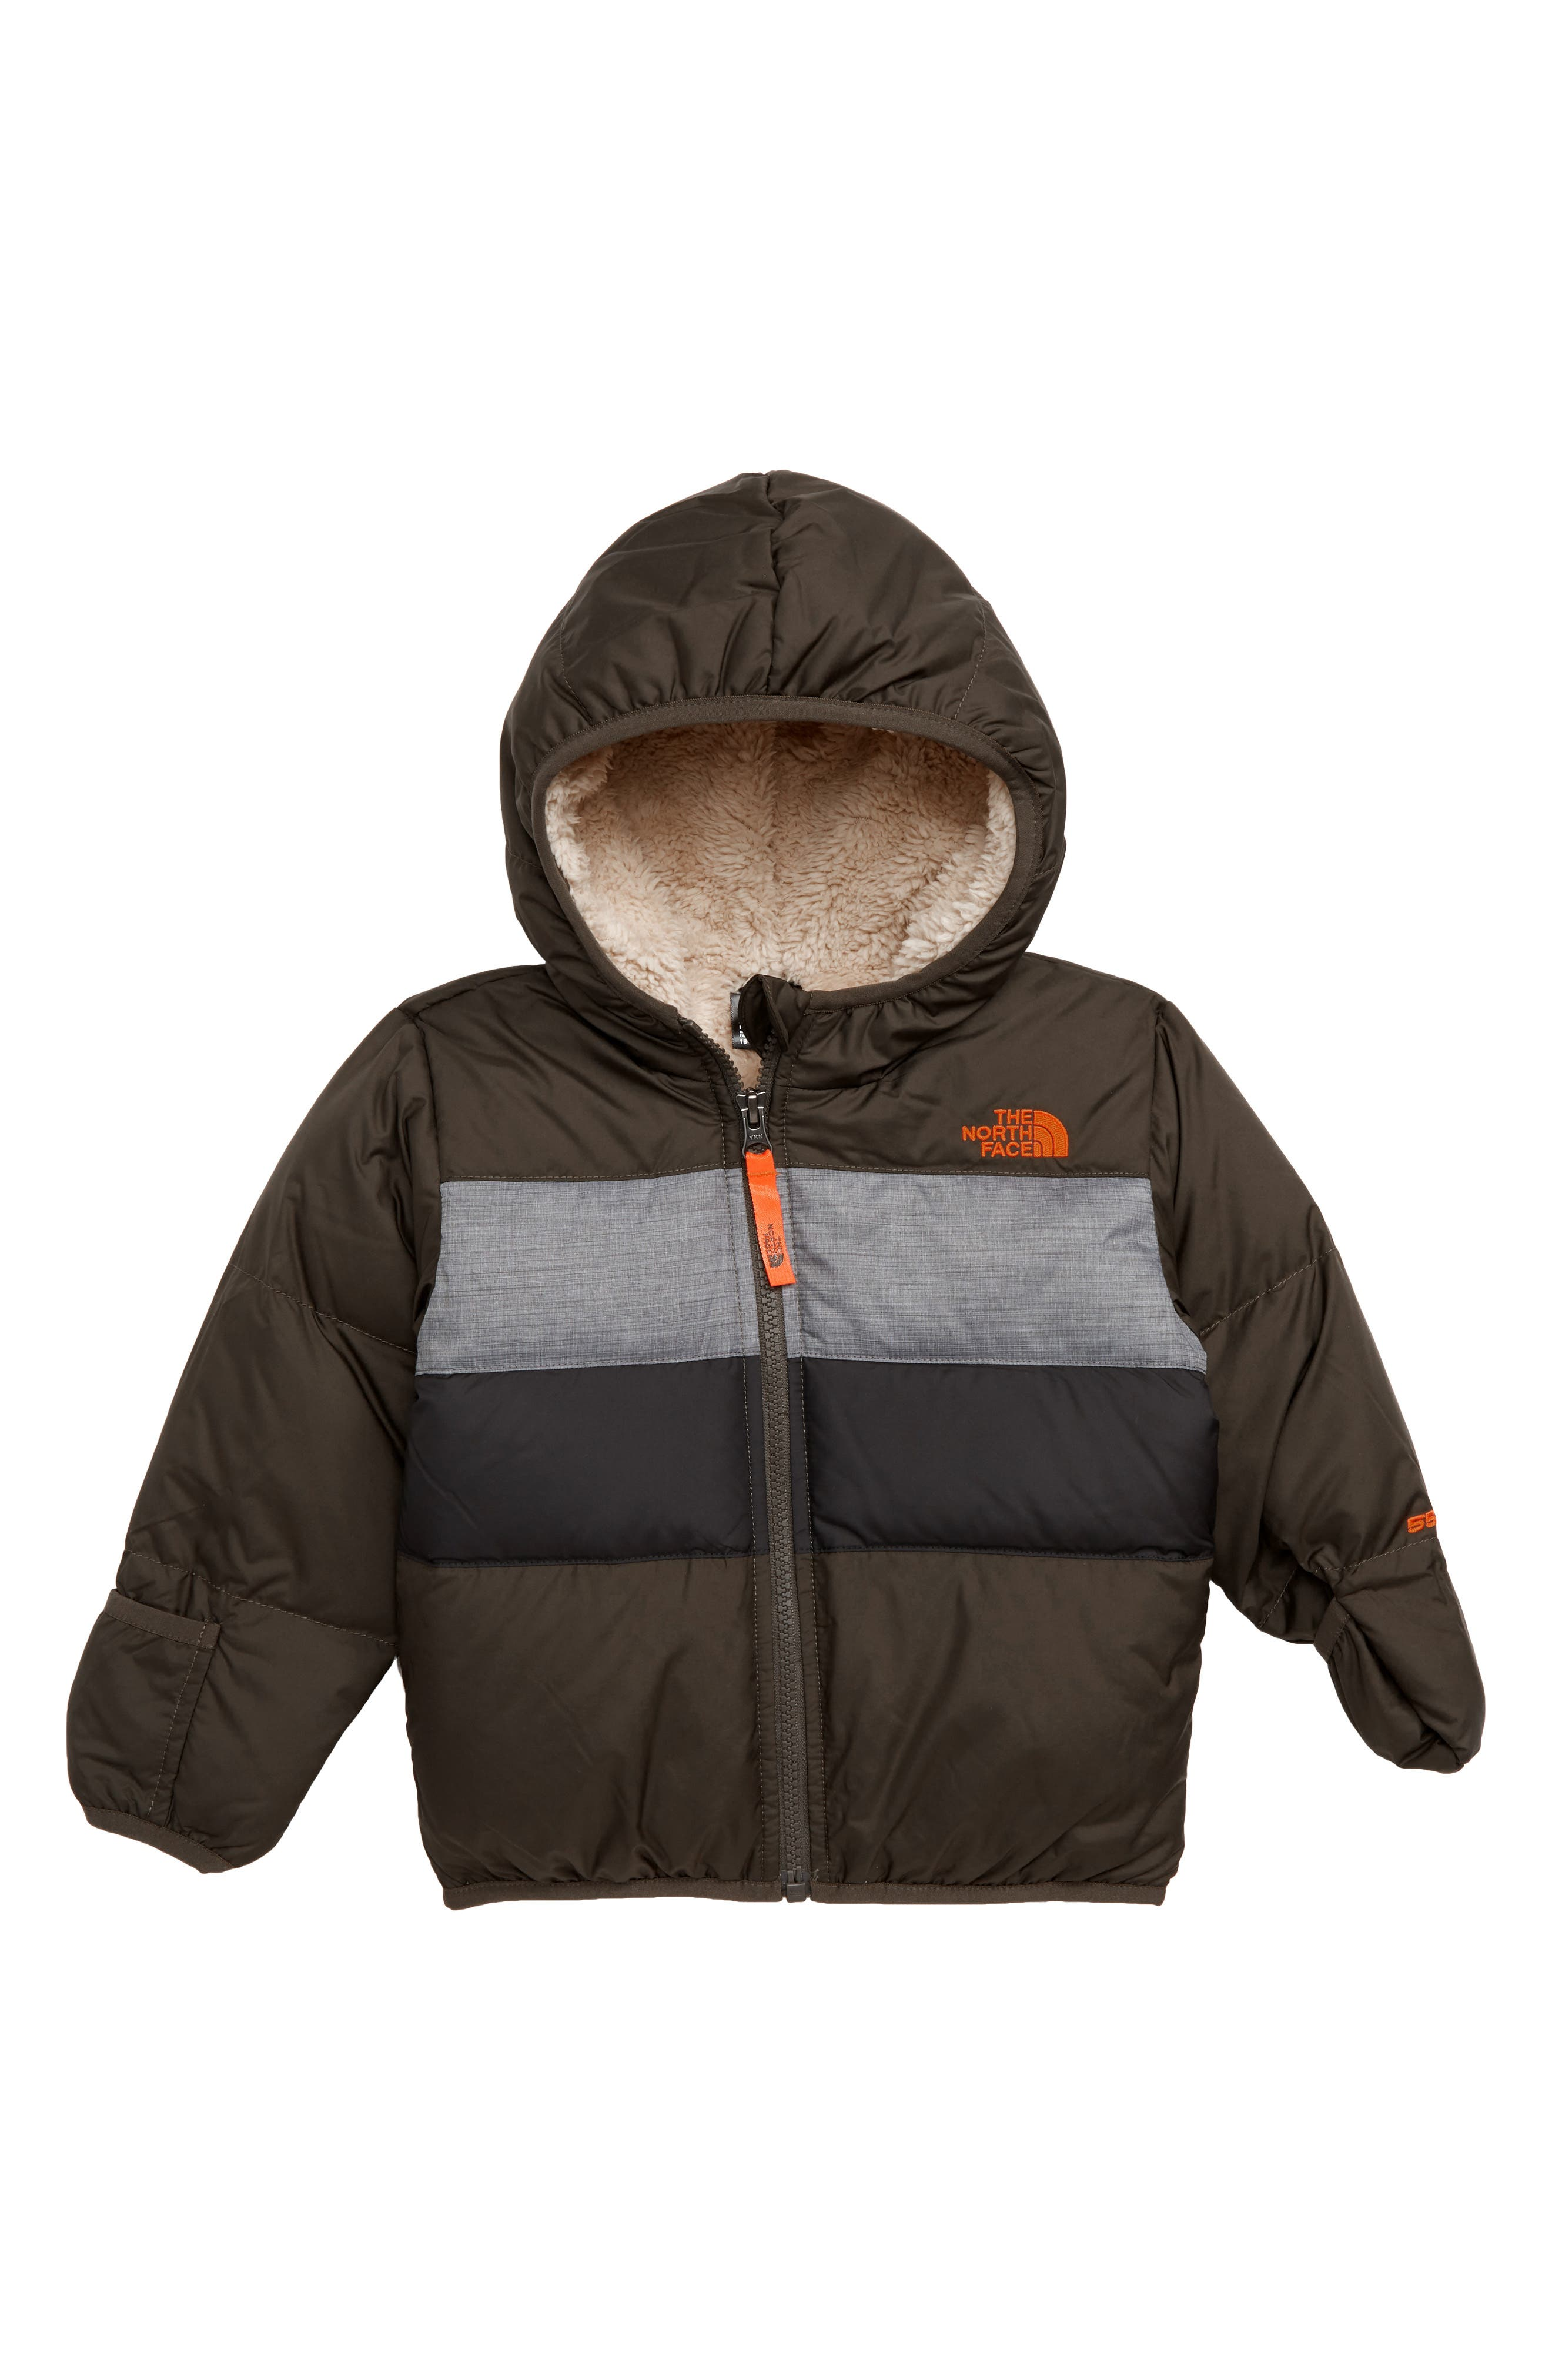 THE NORTH FACE,                             Moondoggy 2.0 Water Repellent Down Jacket,                             Main thumbnail 1, color,                             301